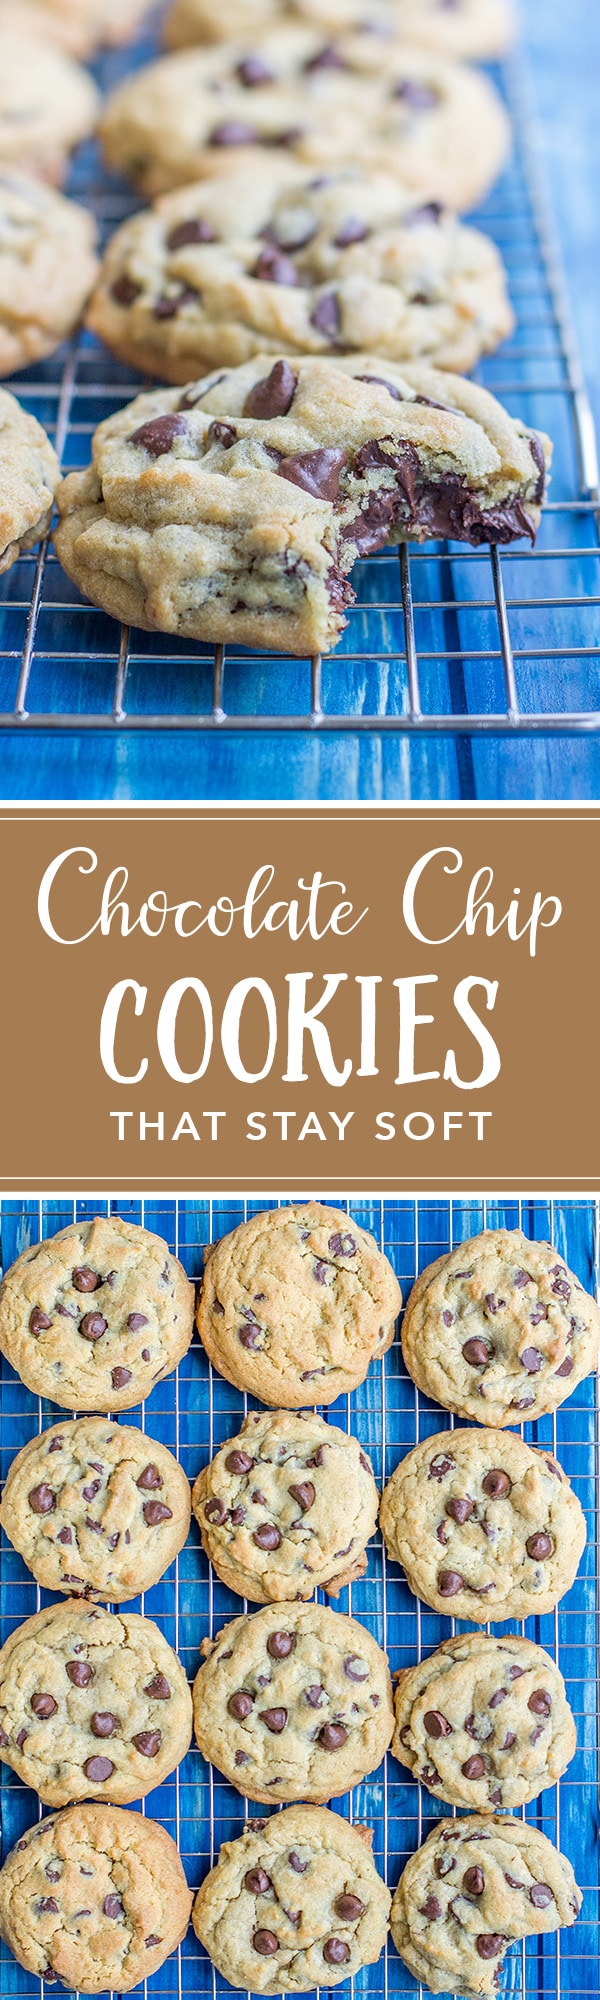 These thick, chewy chocolate chip cookies are so easy to make, pillowy soft and stay that way for days! Perfect to make in a big batch or ship to family! #chocolatechipcookies